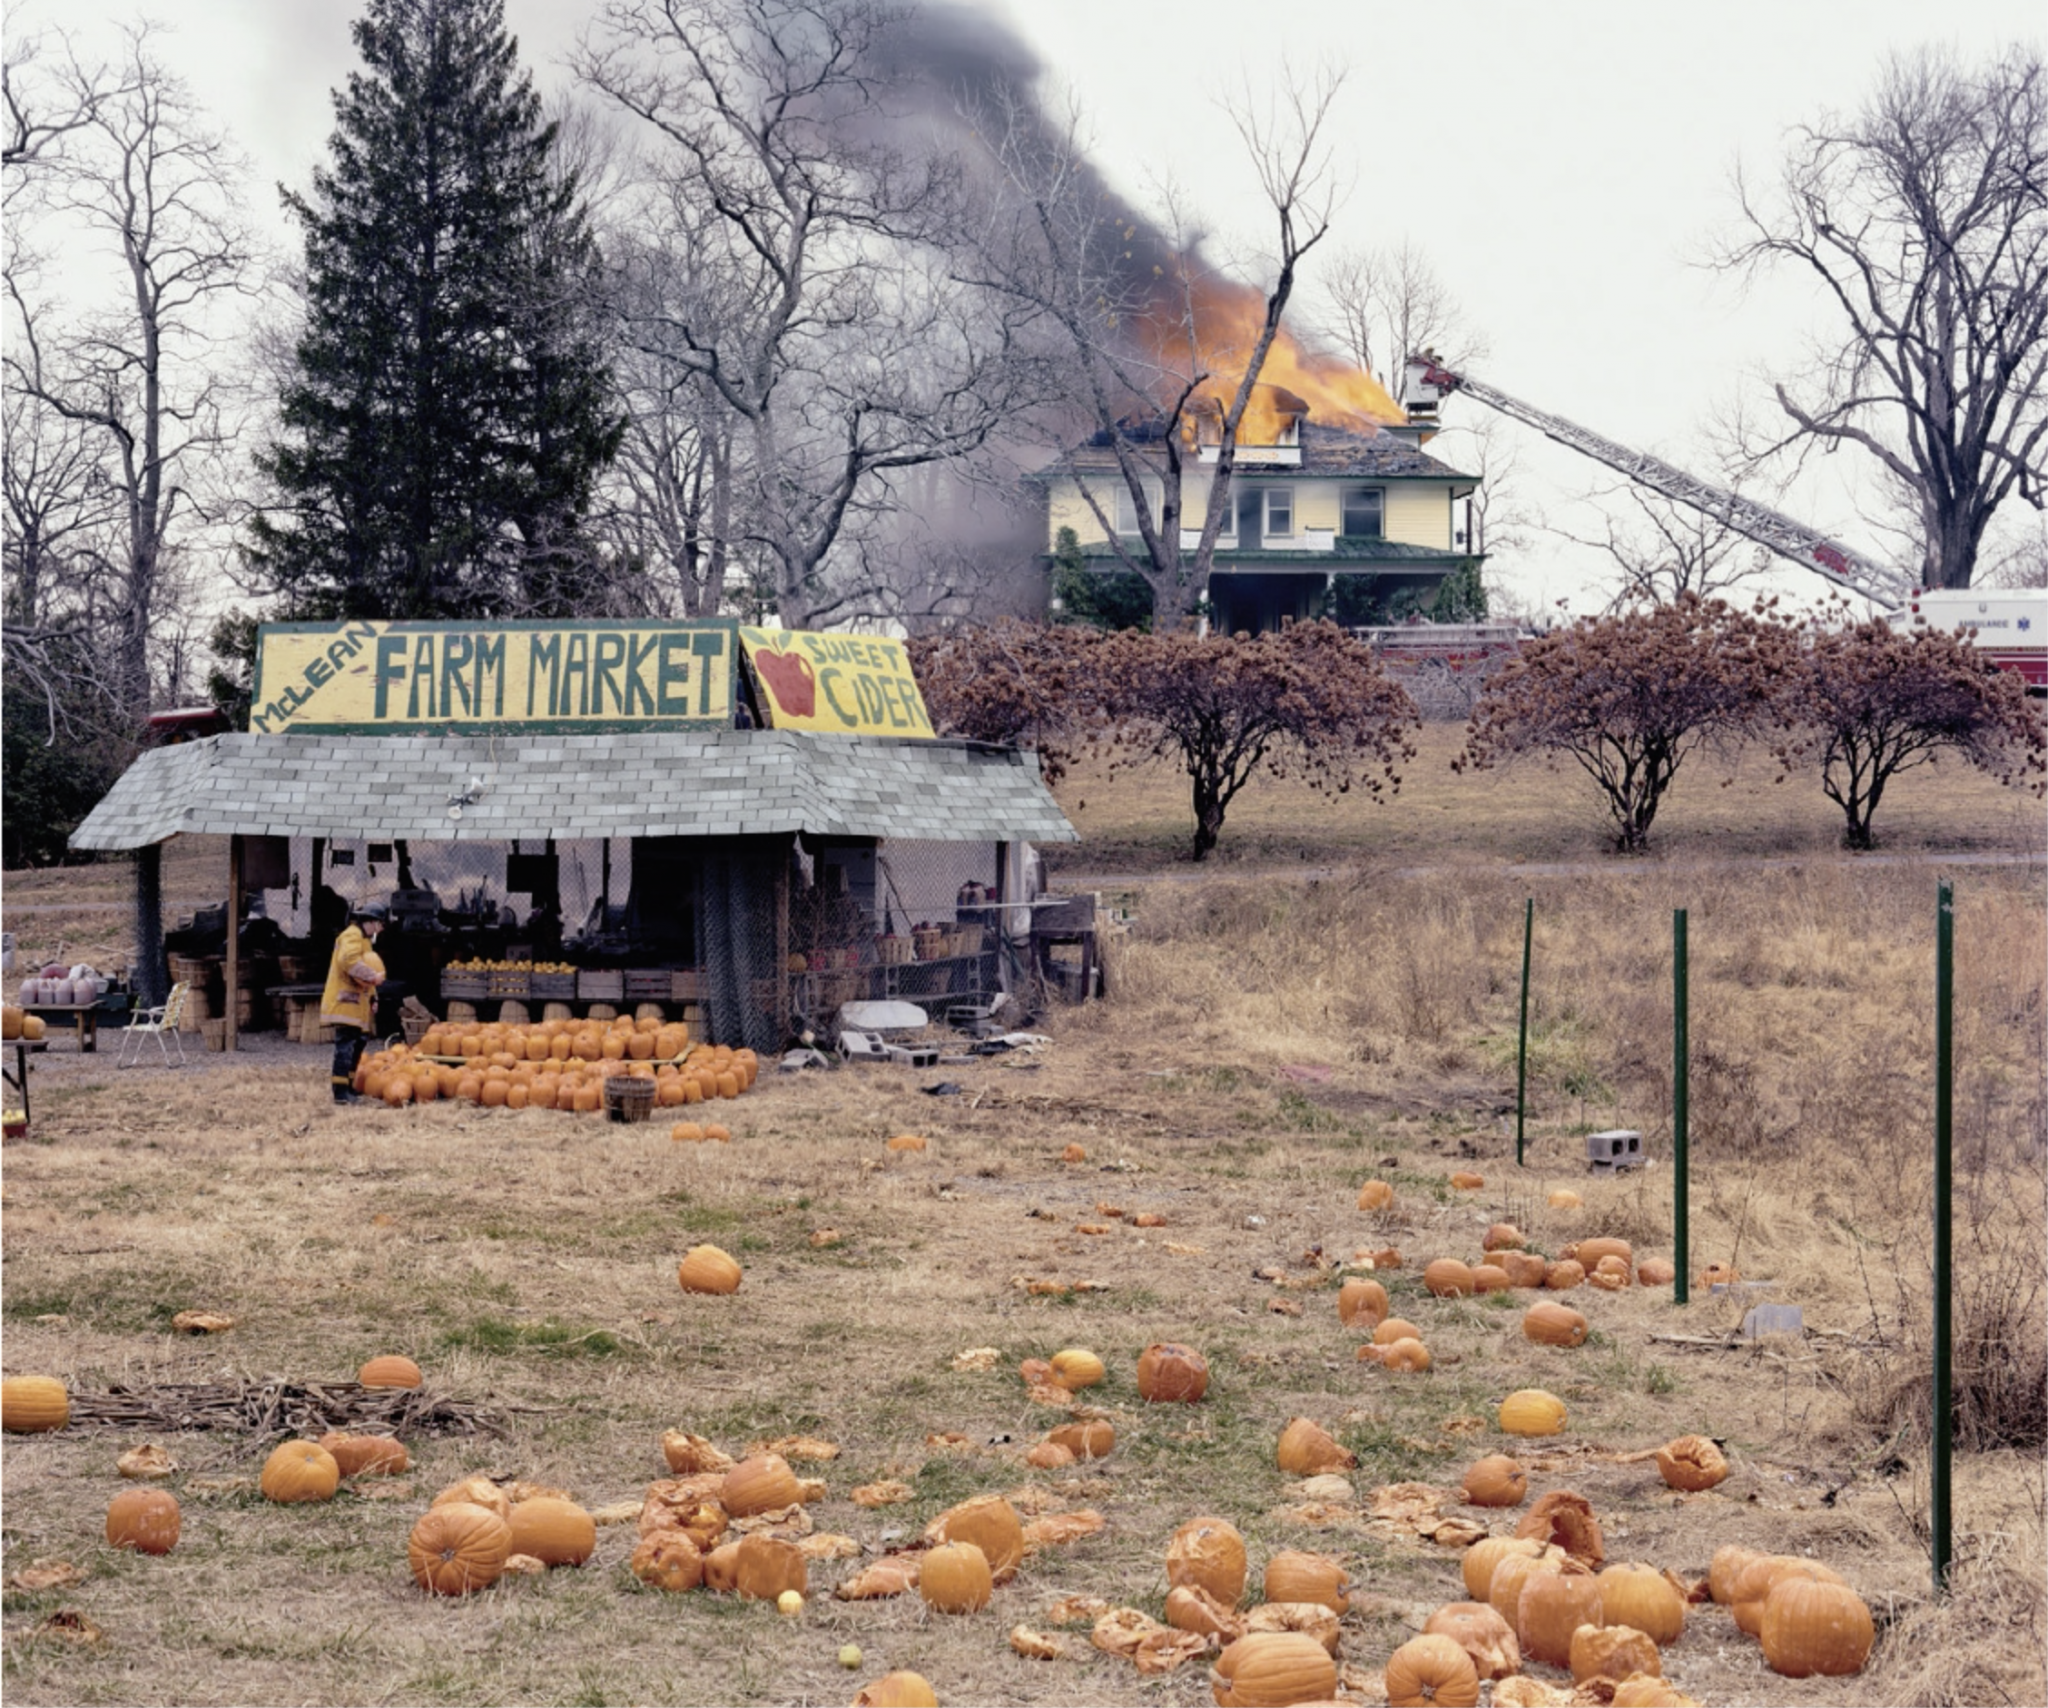 Joel Sternfeld, The Present Environmental Predicament, from the series American Prospects, 1987